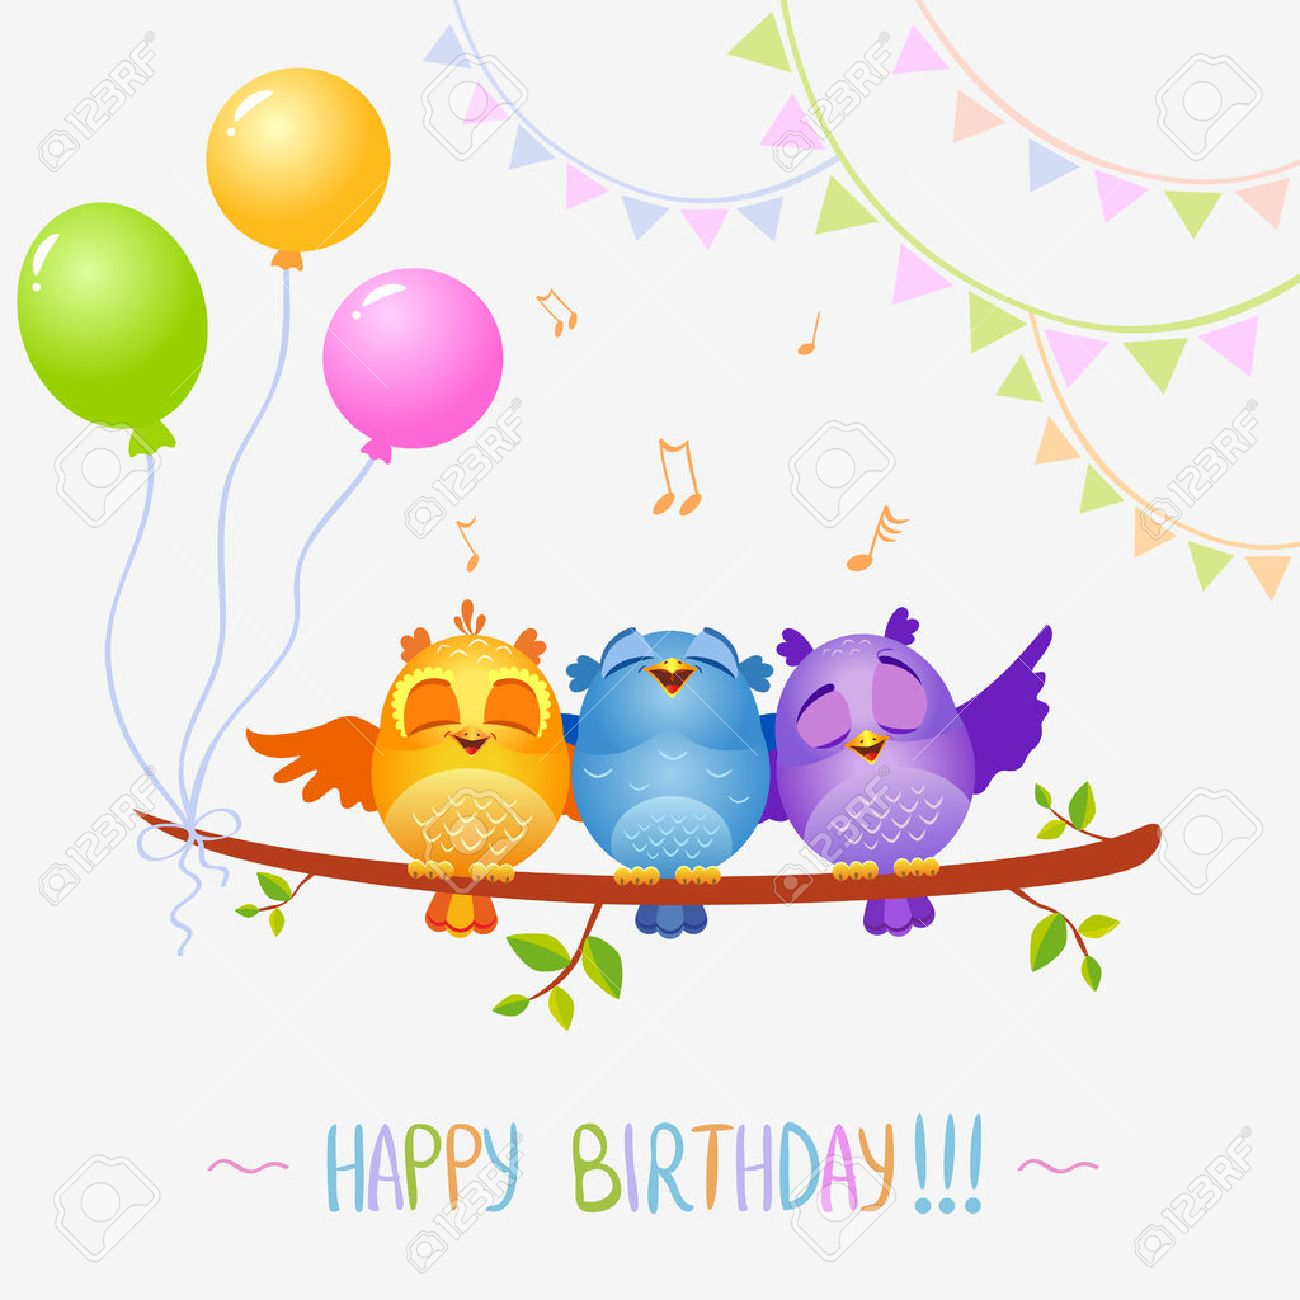 Feliz cumpleaños,  Gaia!!! 22719235-illustration-of-funny-characters-birds-sing-happy-birthday